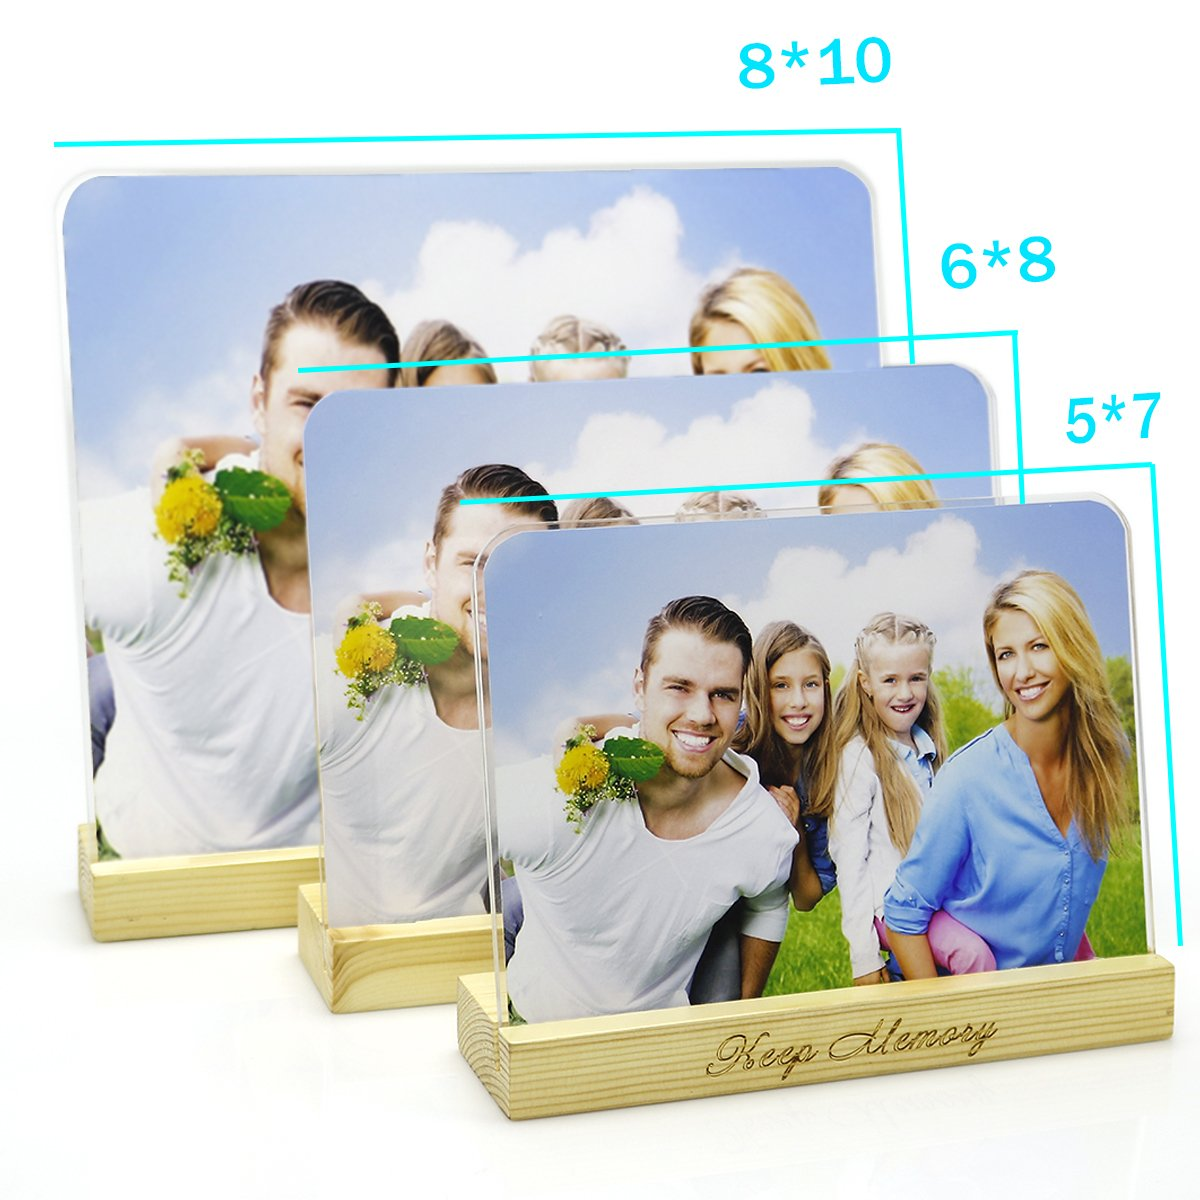 5x7 Clear Acrylic Picture Frame With Wood Holder - Round Corner Acrylic Glass Plate Picture Frame Stand on The Desk With a Wood Holder - Desk Calendar Display with Gift Box Package - SupperAcrylic